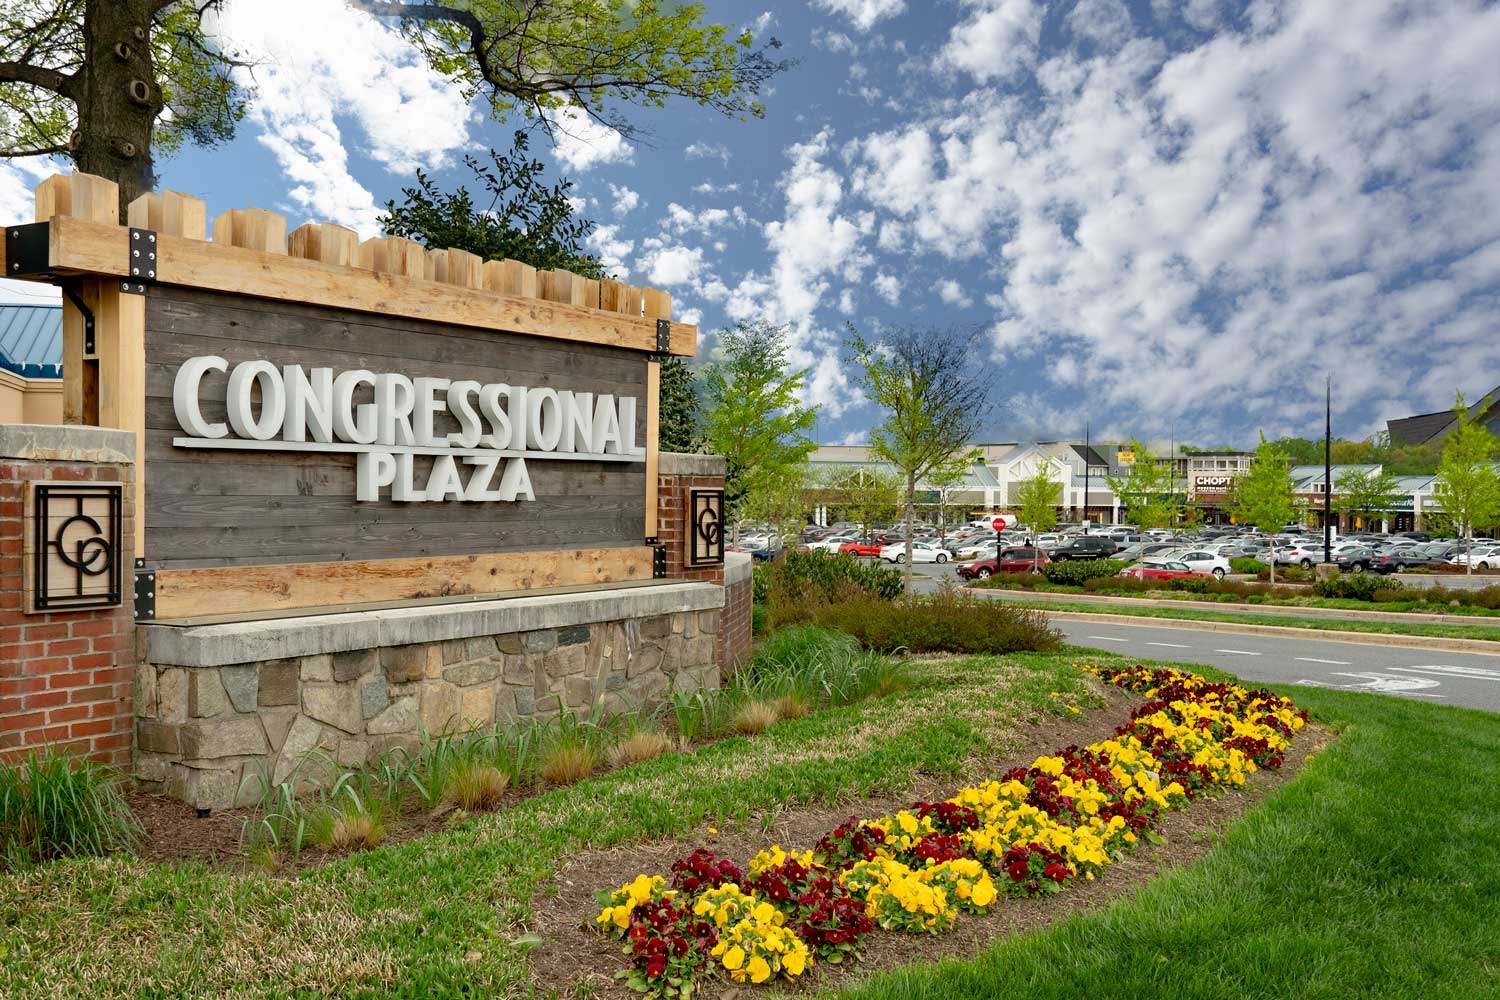 Congressional Plaza is 10 minutes from Village Square Apartments in Wheaton, MD